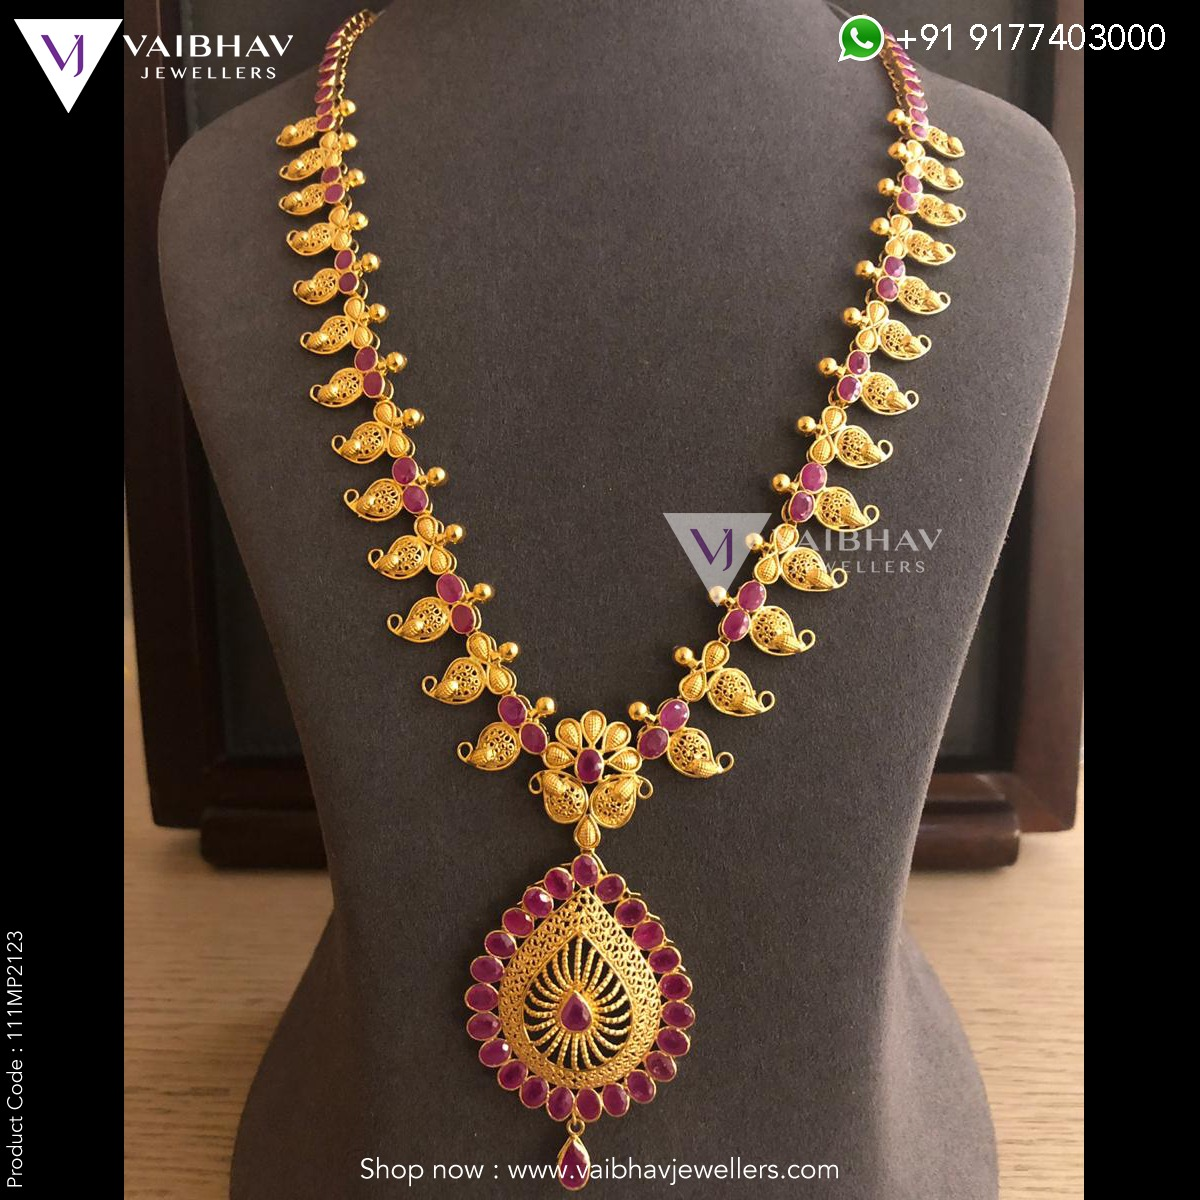 4bd8b4024675f Antique gold ruby necklaces by Vaibhav Jewellers - Jewellery Designs